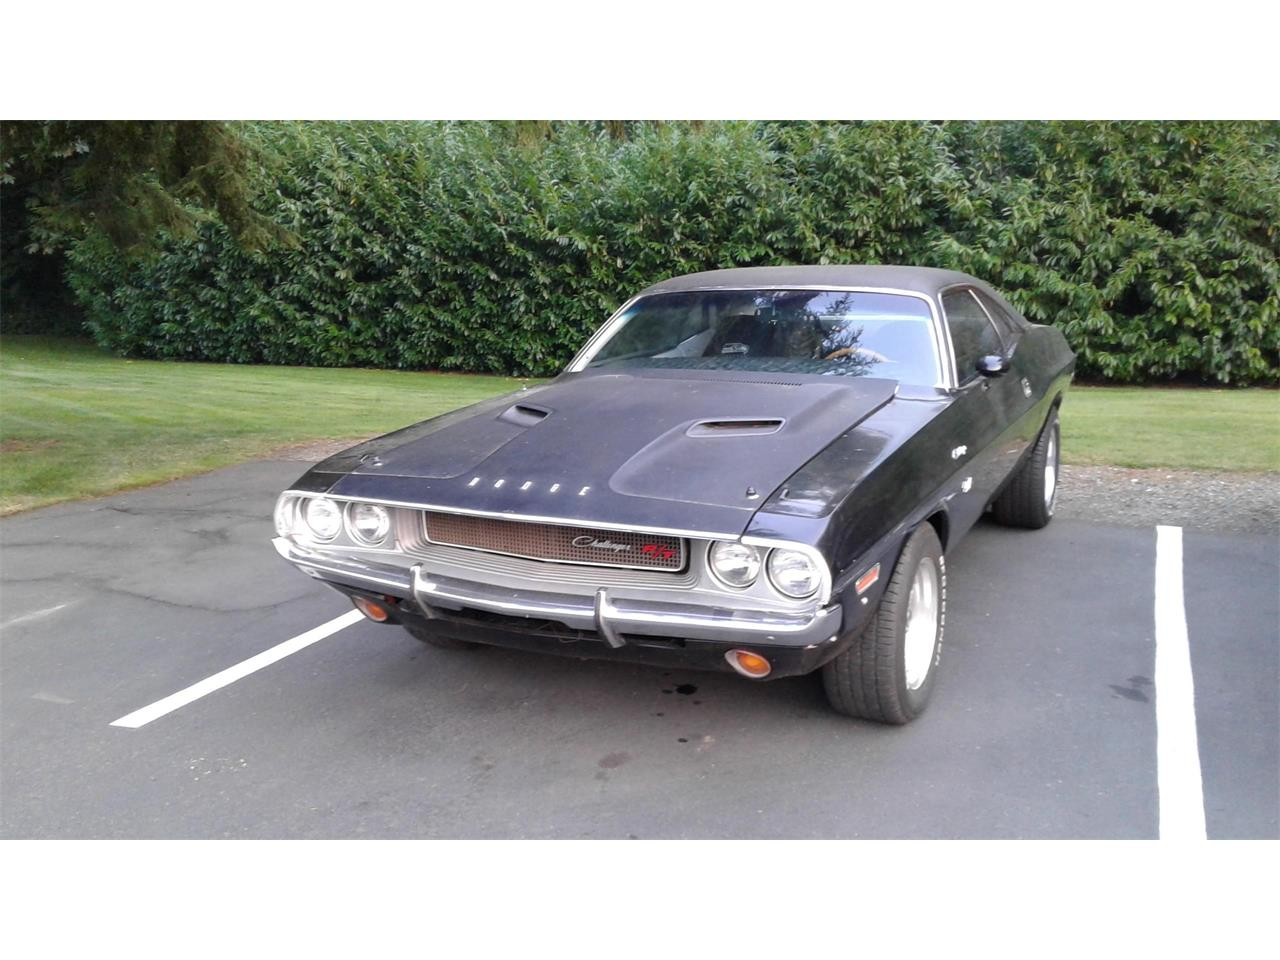 1970 Dodge Challenger (CC-1246903) for sale in TACOMA, Washington